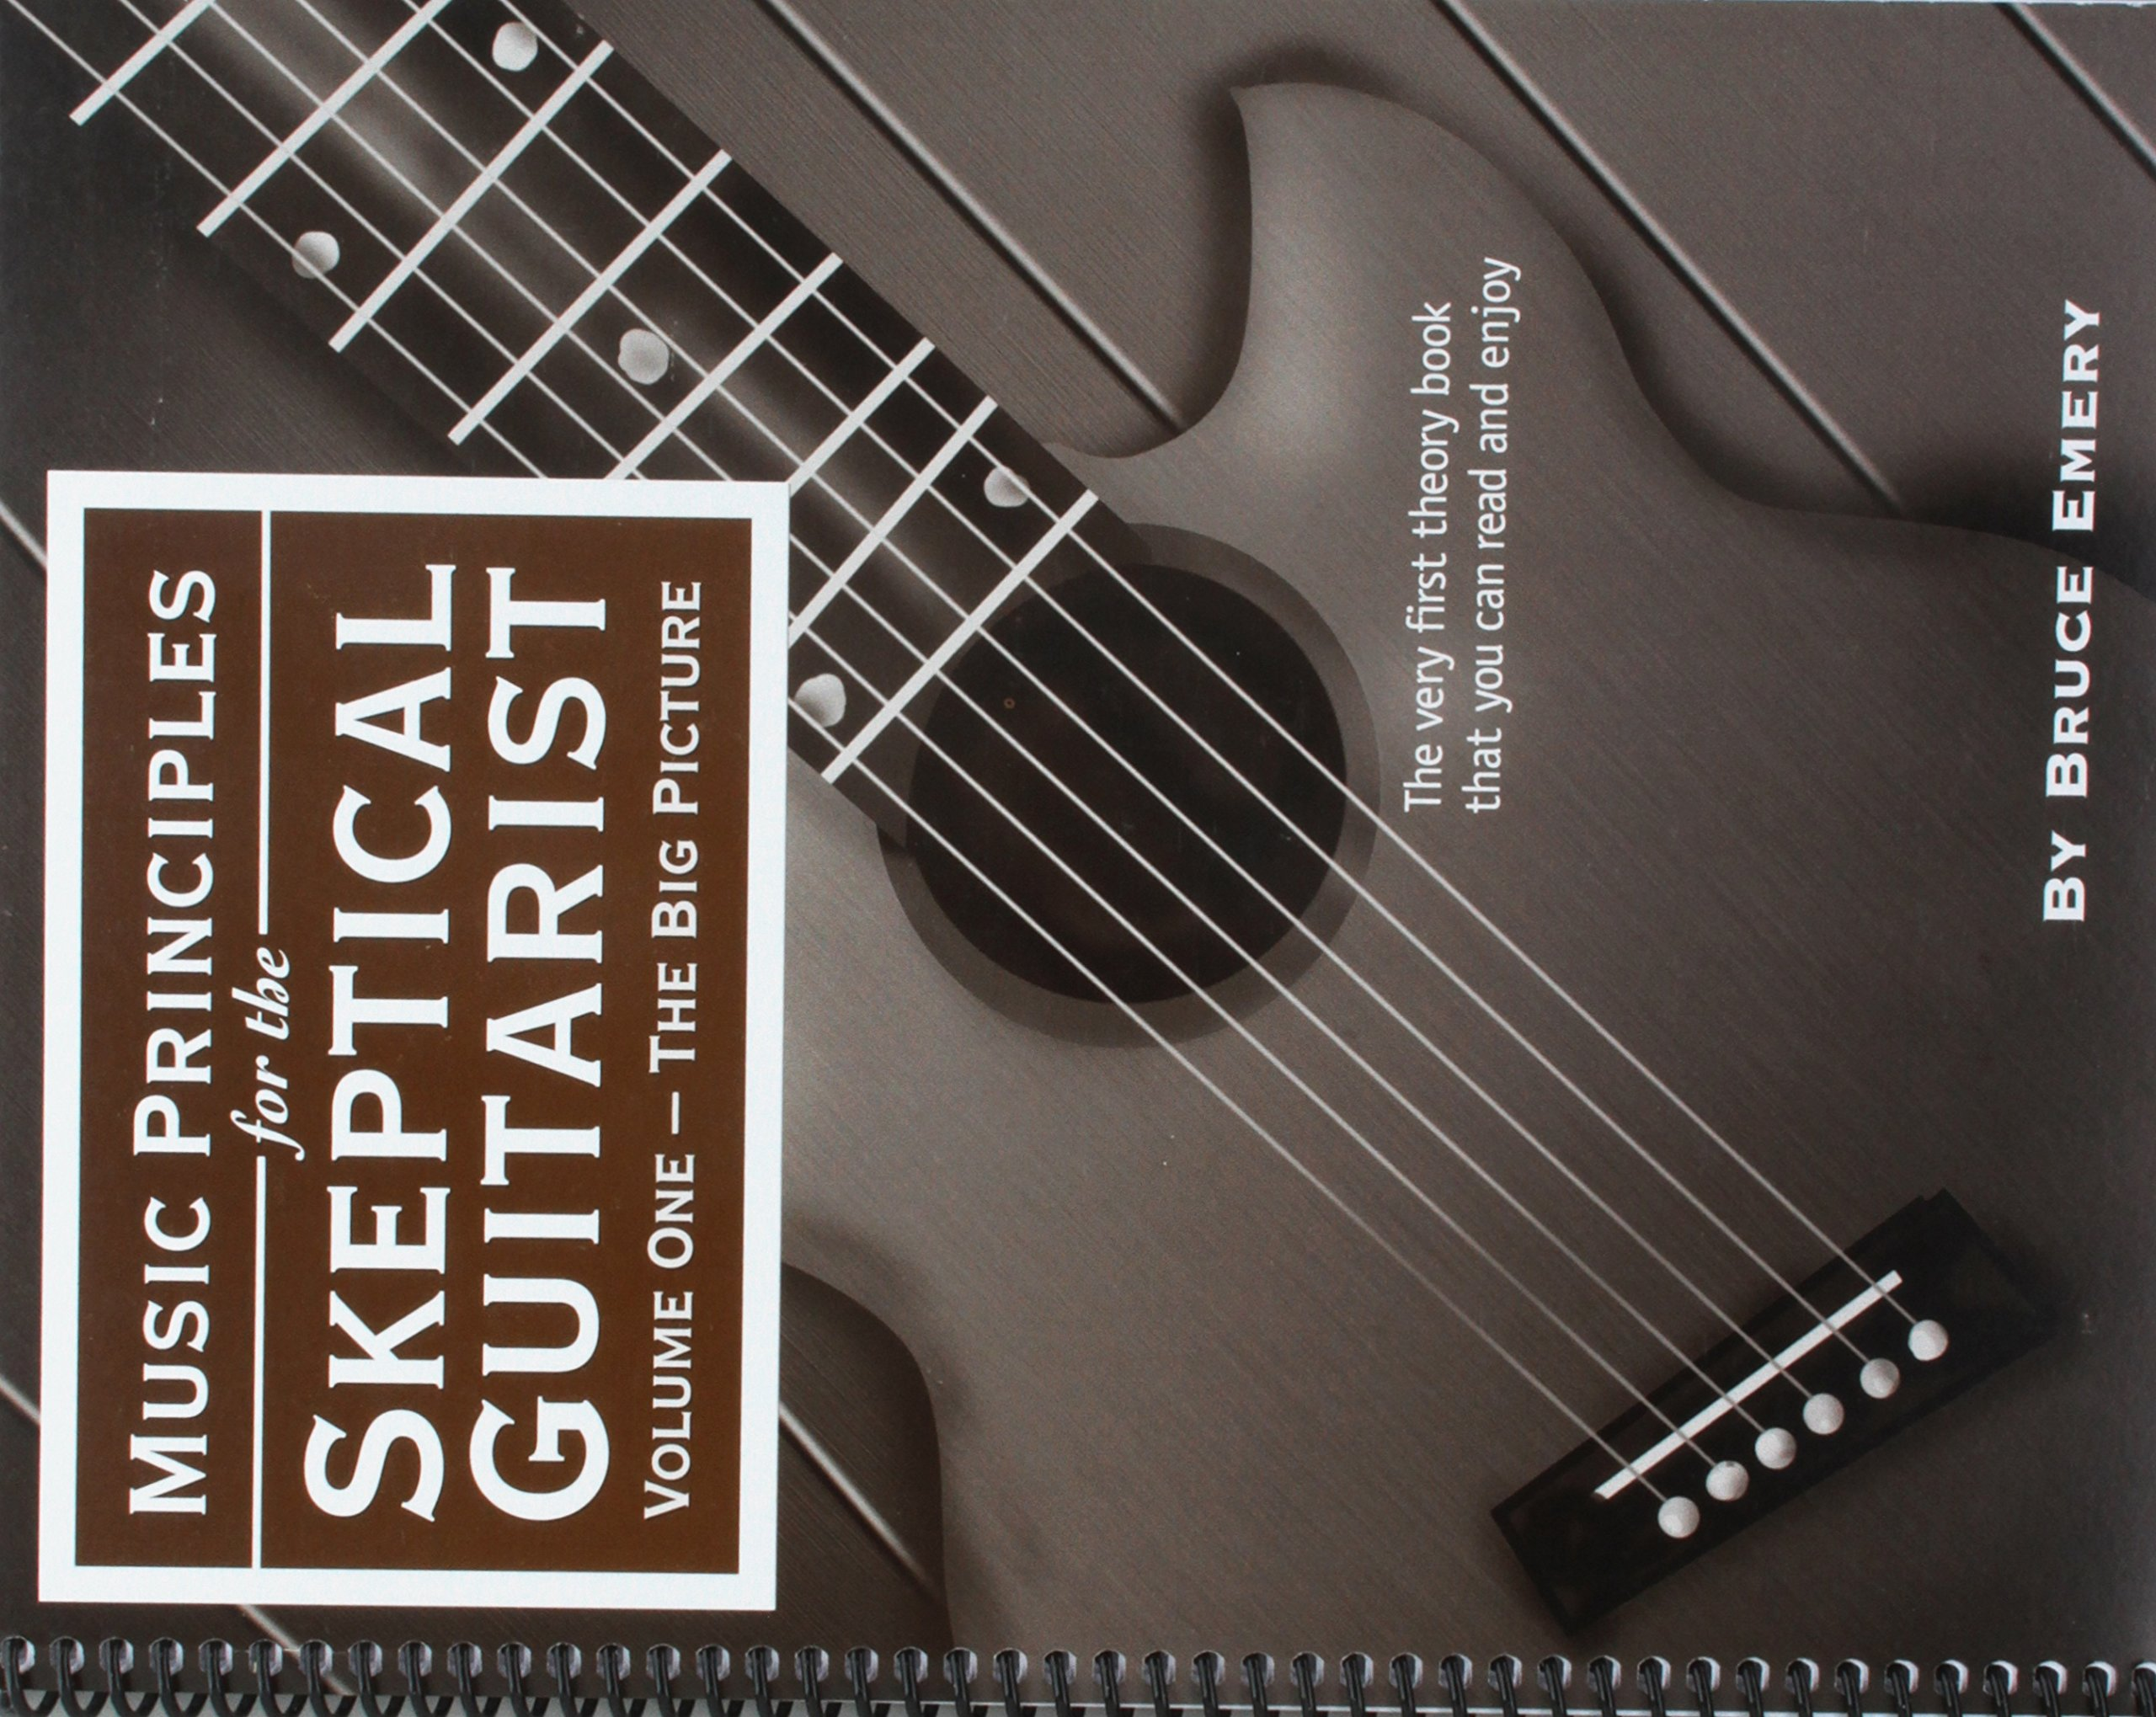 Musical Principles For The Skeptical Guitarist Volume 1 The Big